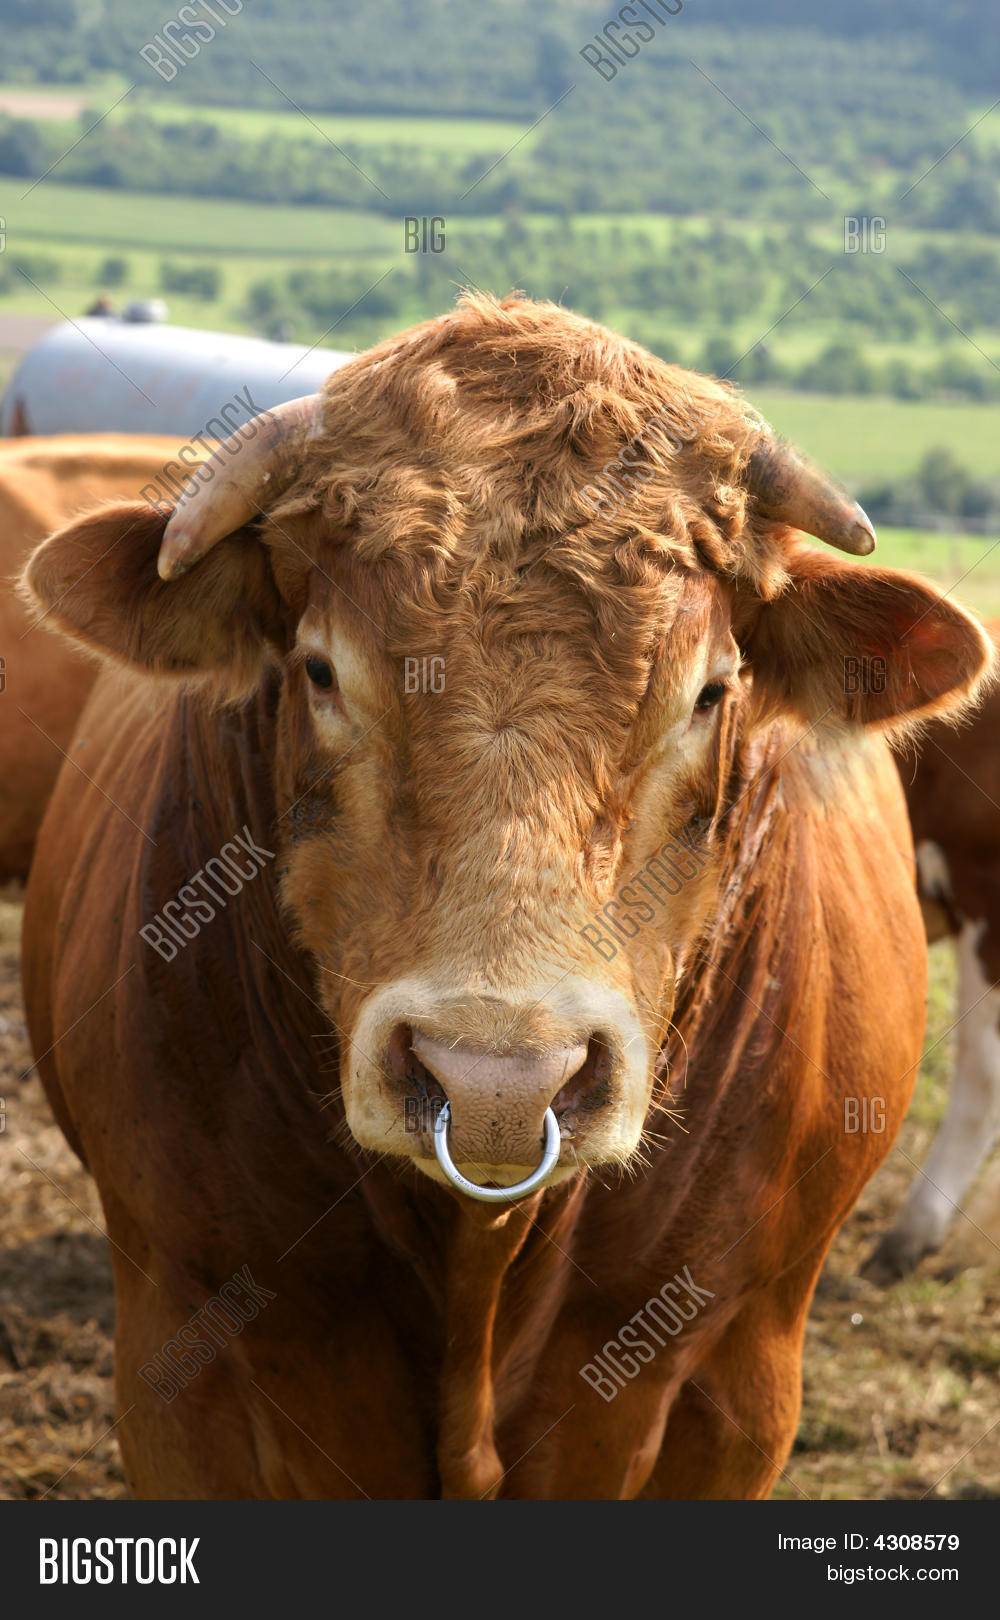 Bull Nose Ring Image Photo Free Trial Bigstock